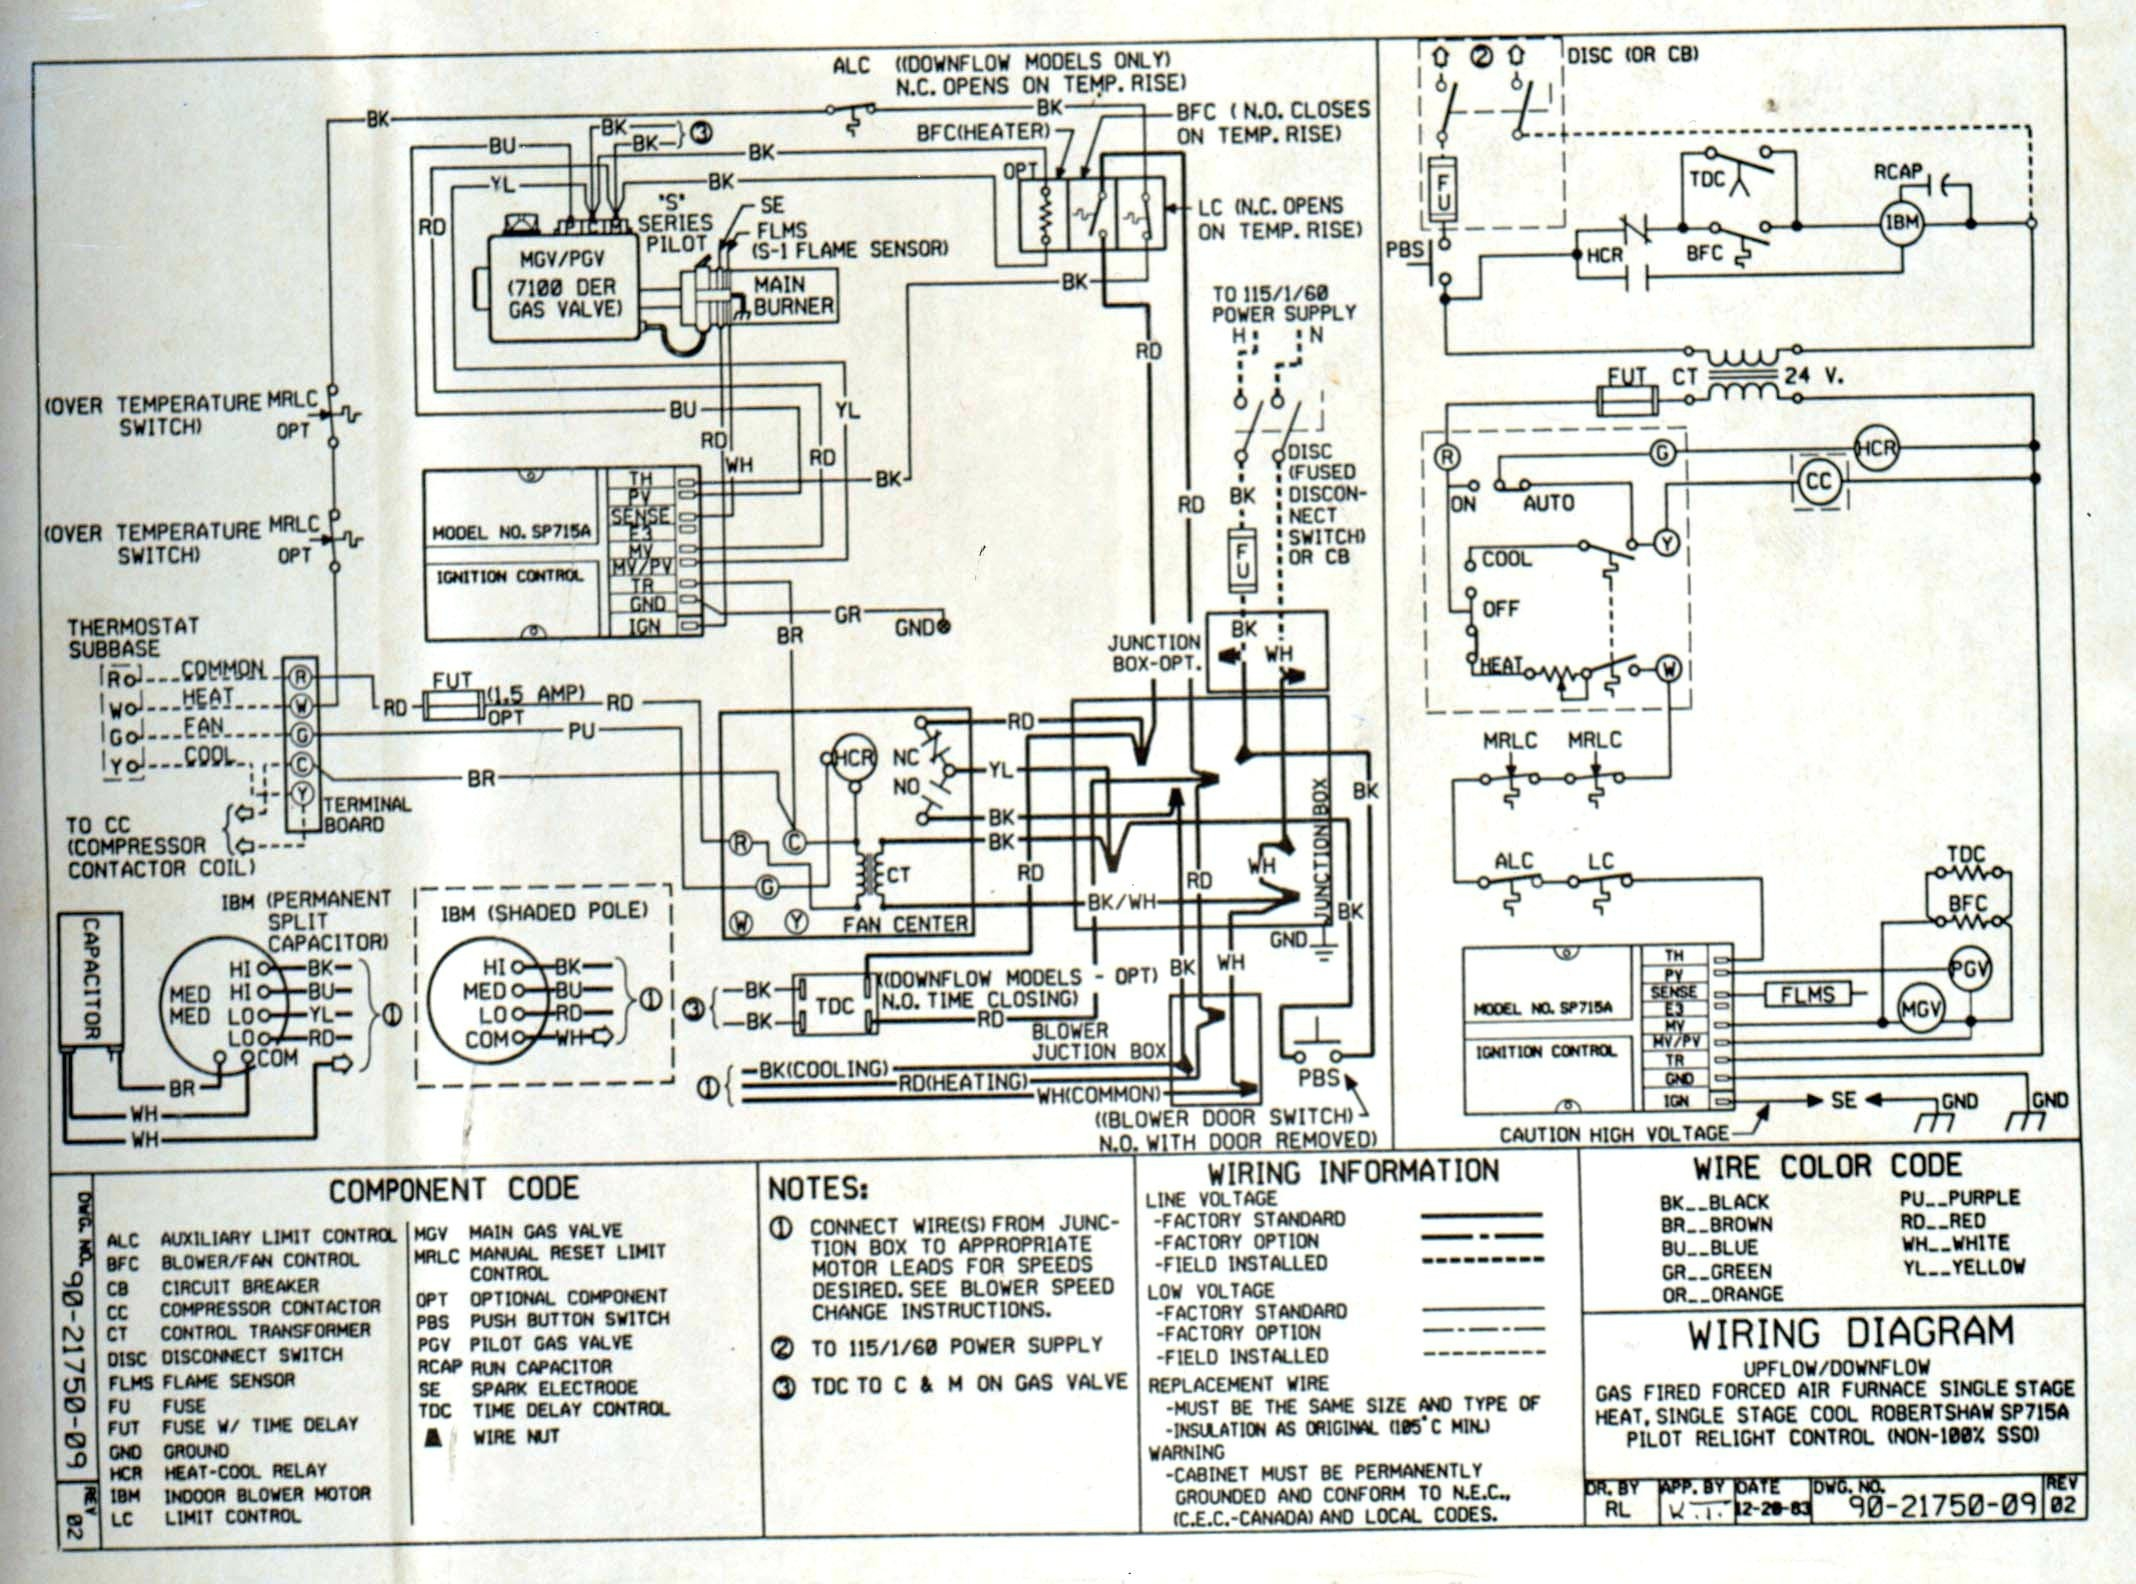 Payne Package Unit Wiring Diagram - Package Air Conditioning Unit Wiring Diagram Save Carrier Electric Furnace Wiring Diagrams for Payne Wiring Diagram 12f